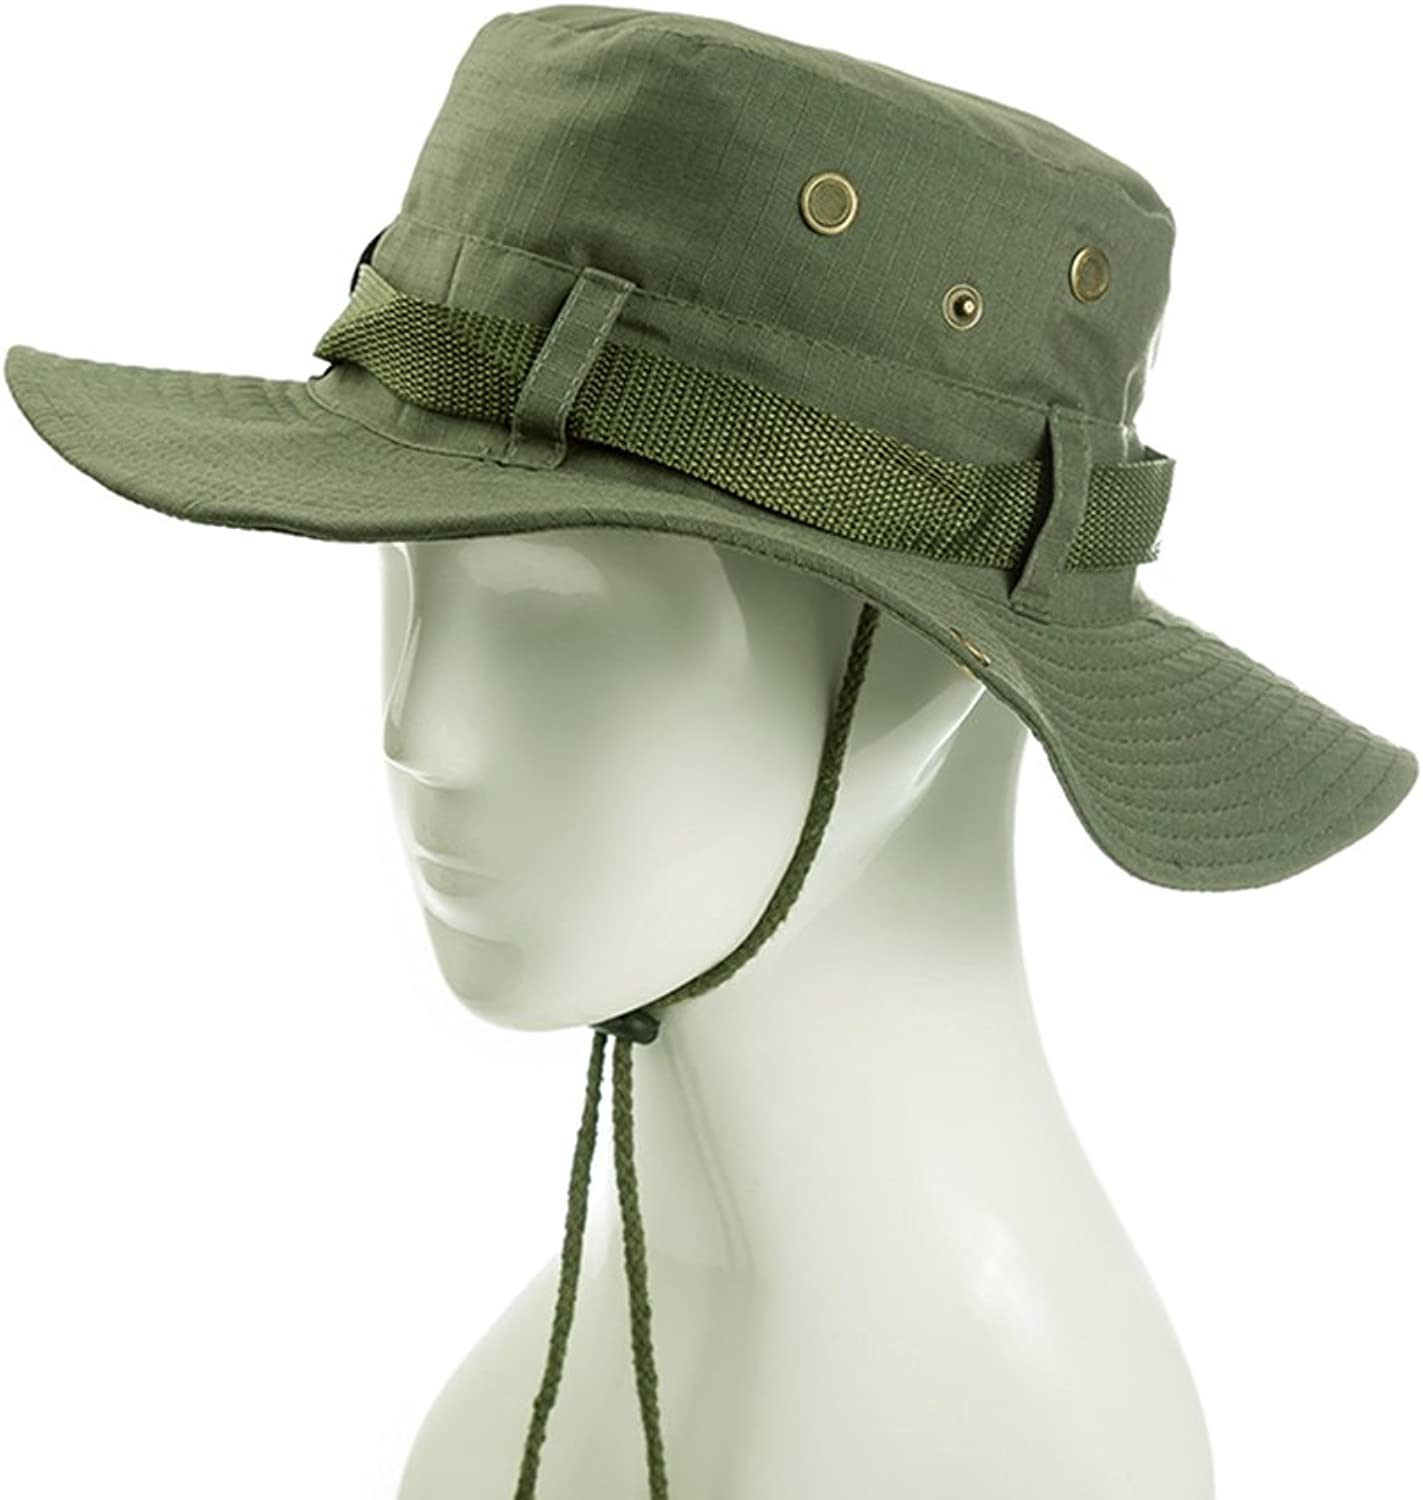 BP Hats Summer Hat, Sun Hat Men Cap Eaves Foldable Anti-UV Wide Brim Wind Rope Breathability Outdoor, 4 colors Optional% (color   Army Green)